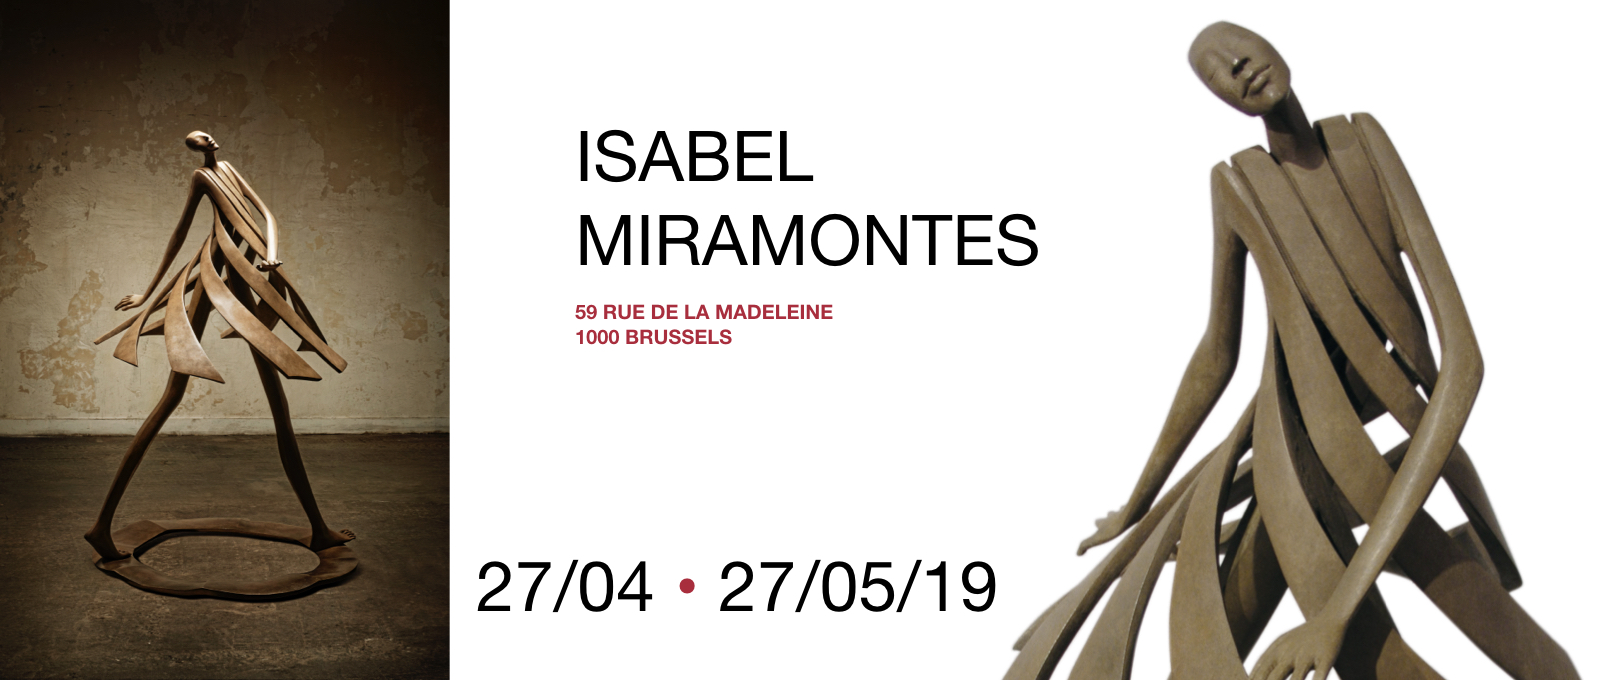 Art Thema gallery - Miramontes Isabel - grand opening 27 April 2019